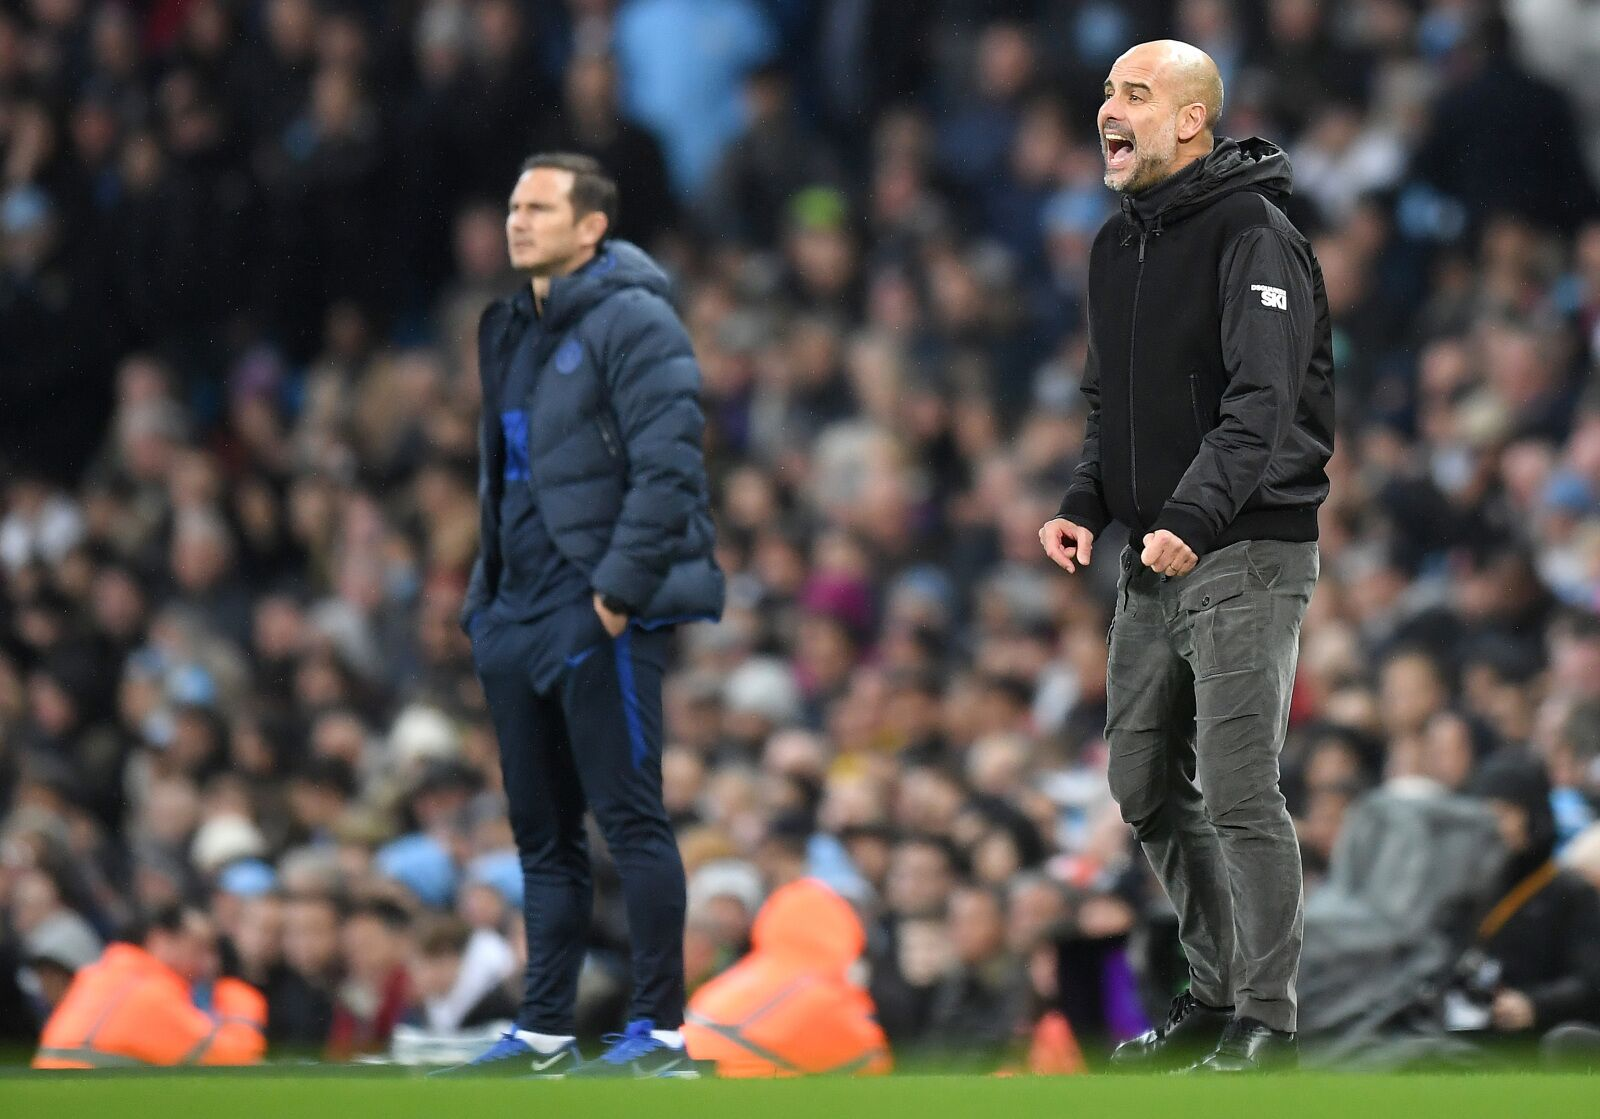 Manchester City has given Chelsea a safety net they should not need